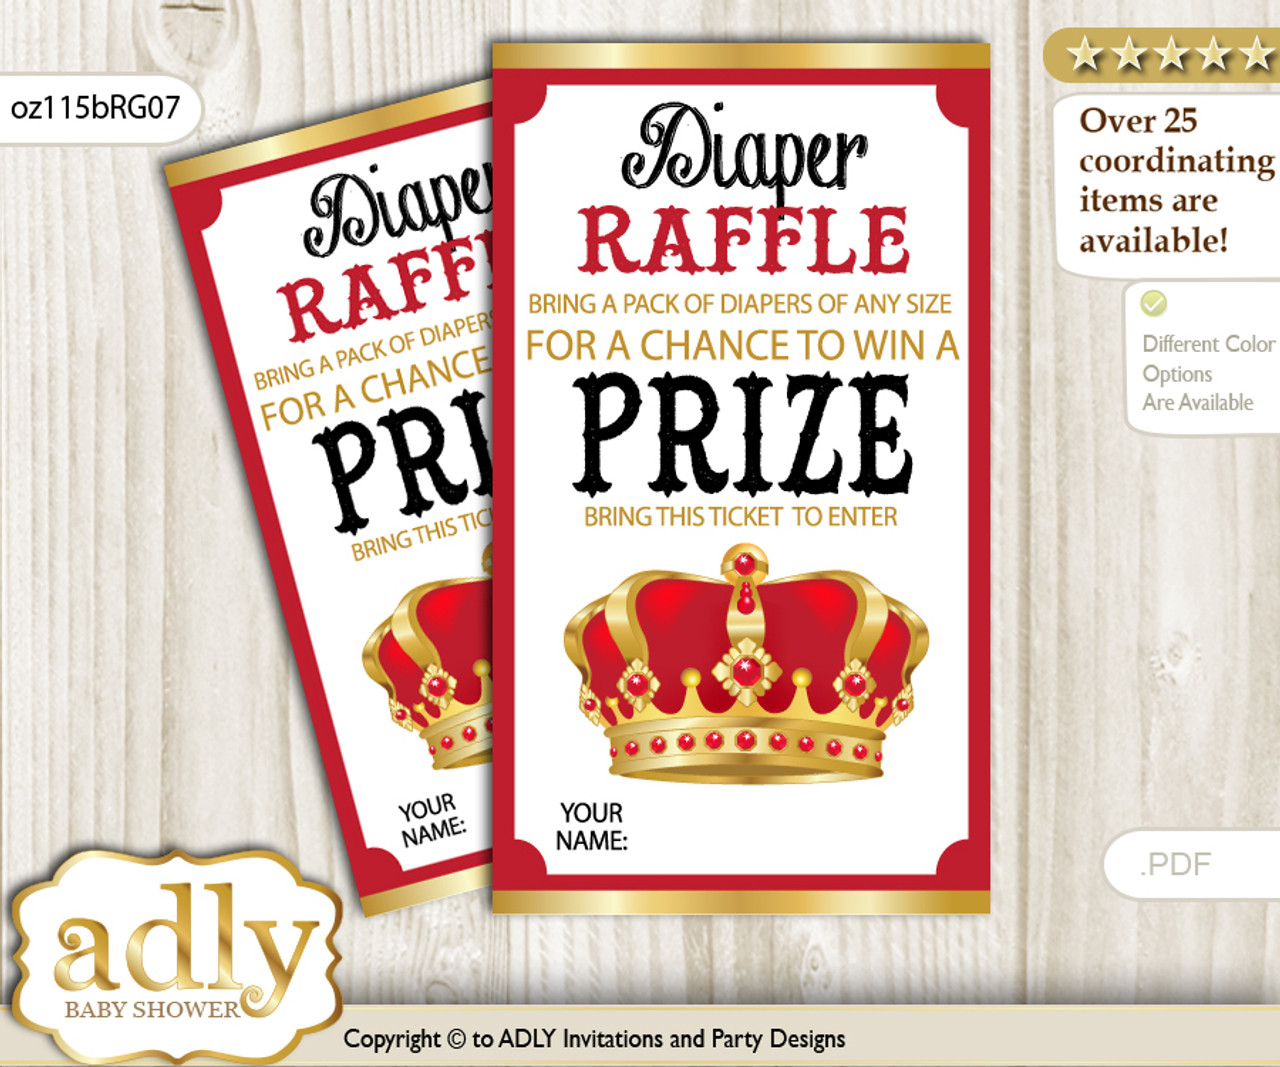 photo about Printable Tickets titled Royal King Diaper Raffle Printable Tickets for Youngster Shower, Crimson Gold, Crown